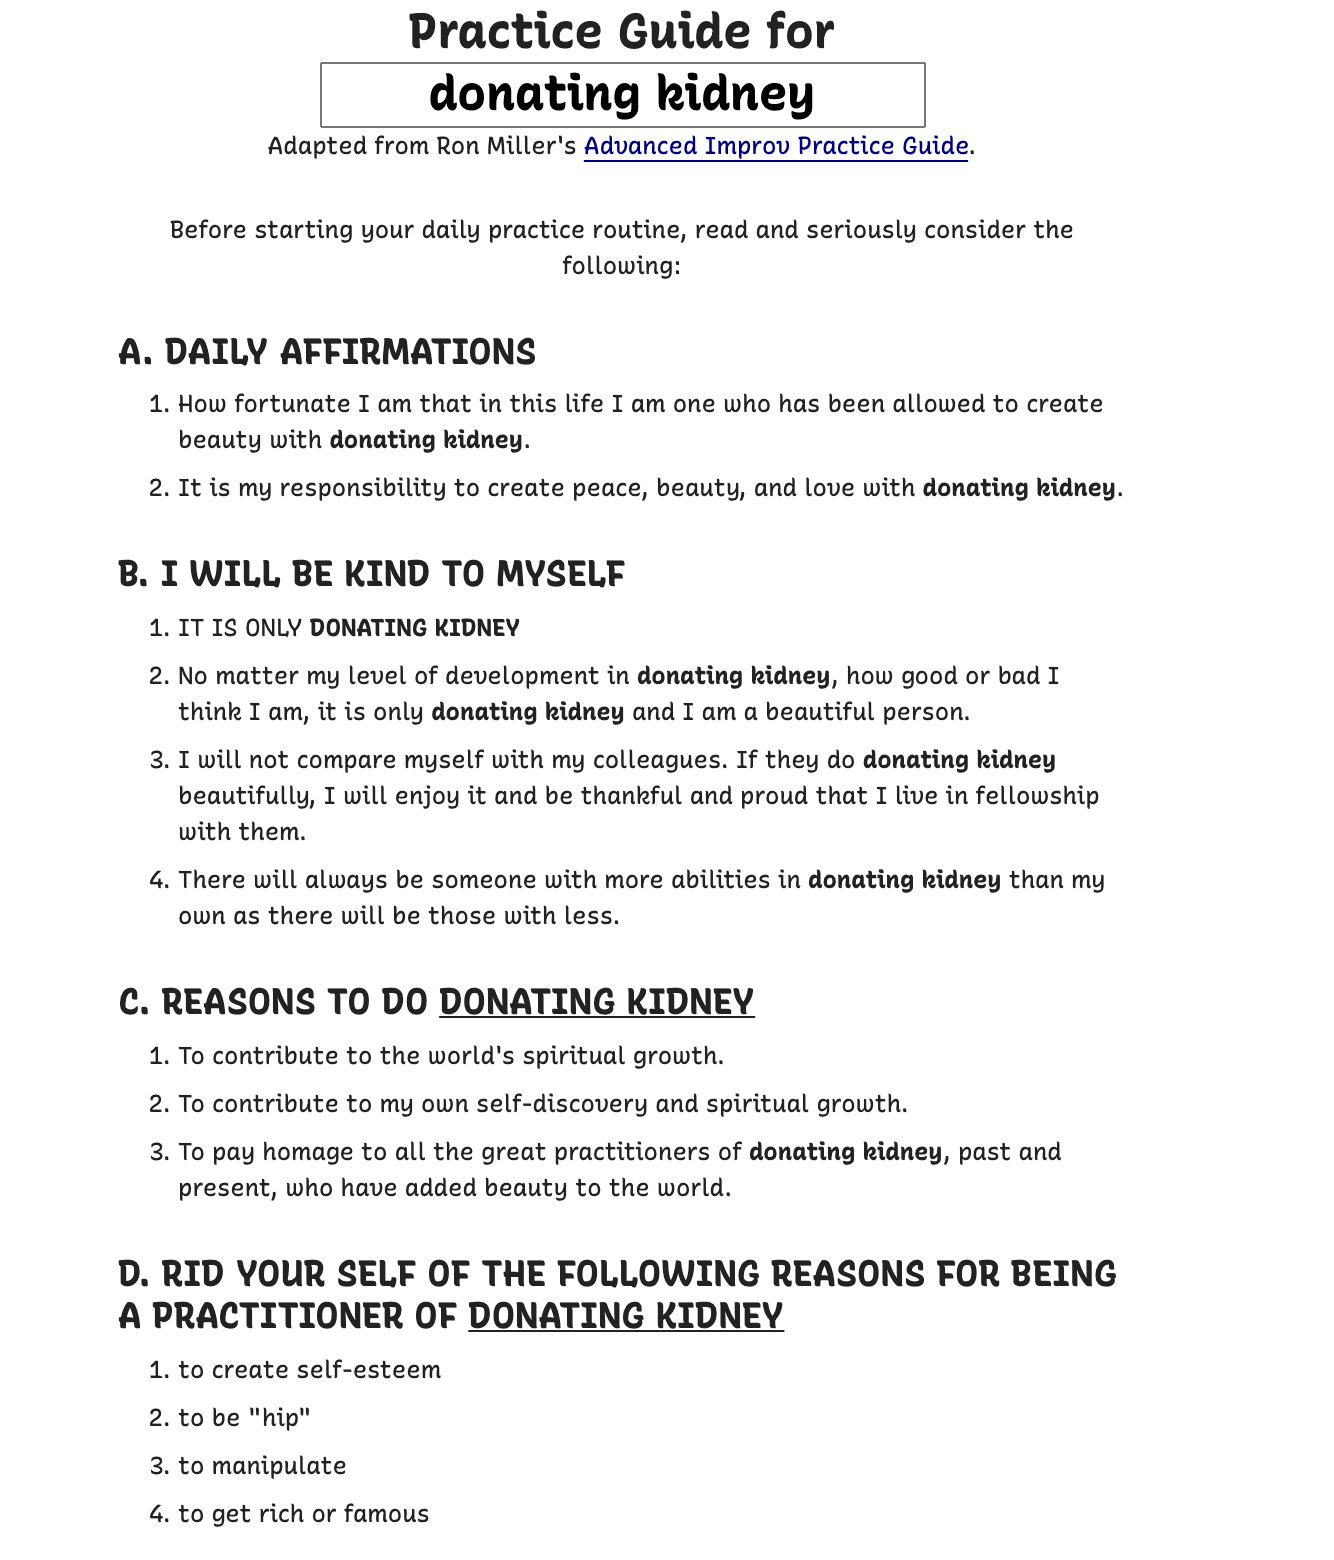 A screenshot of the Practice Guide for donating kidney. It's long, hit the link in the caption for the full text.